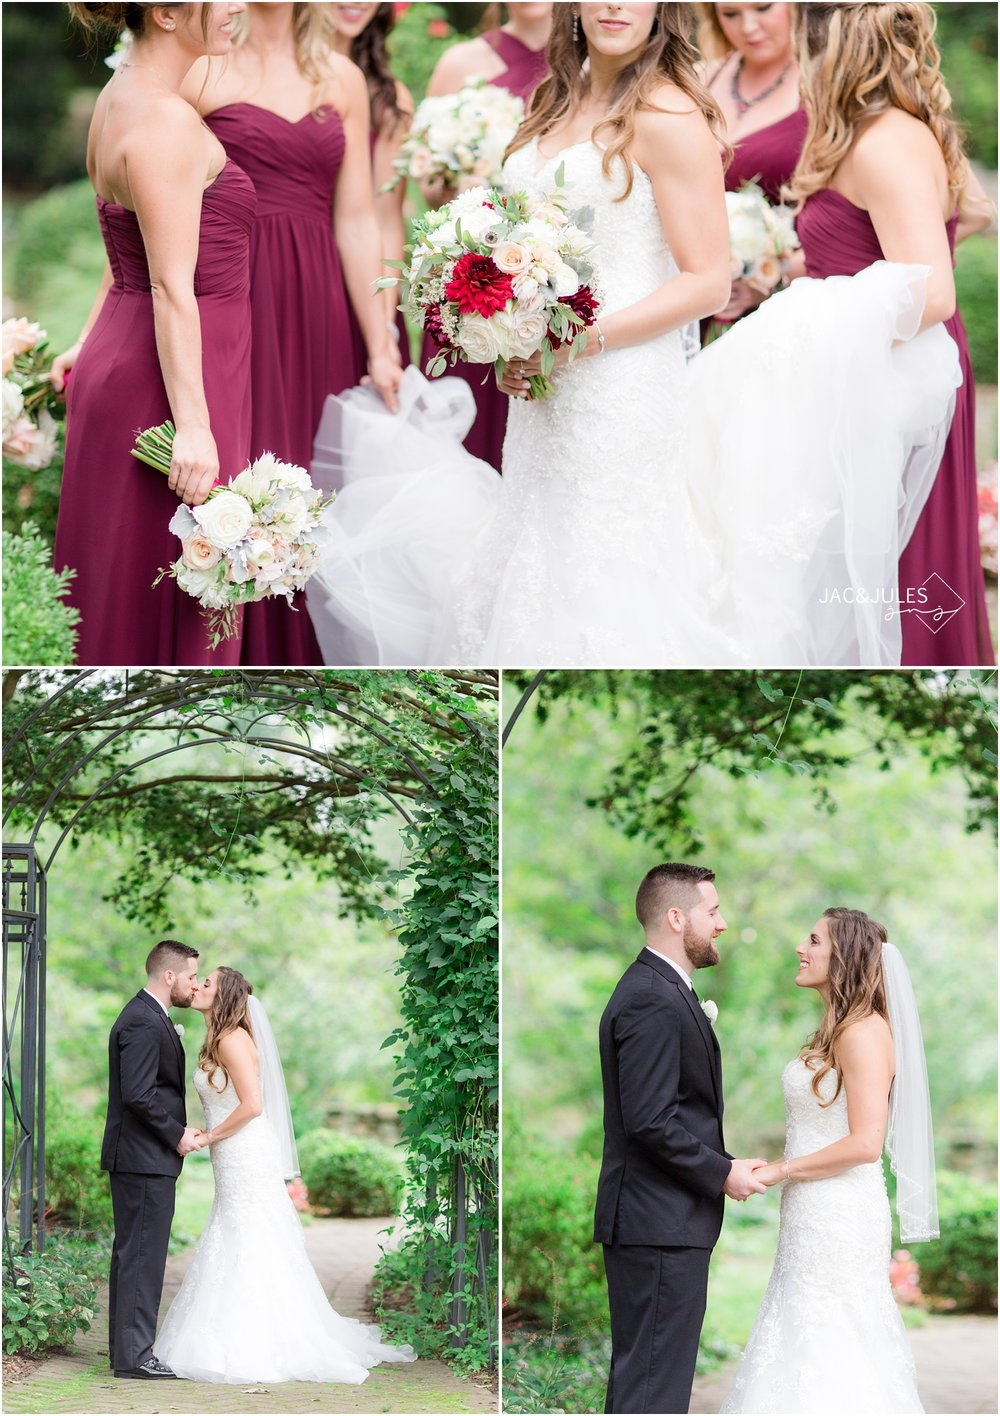 Newlywed couple photos at Cross Estate Gardens in Bernardsville, NJ.